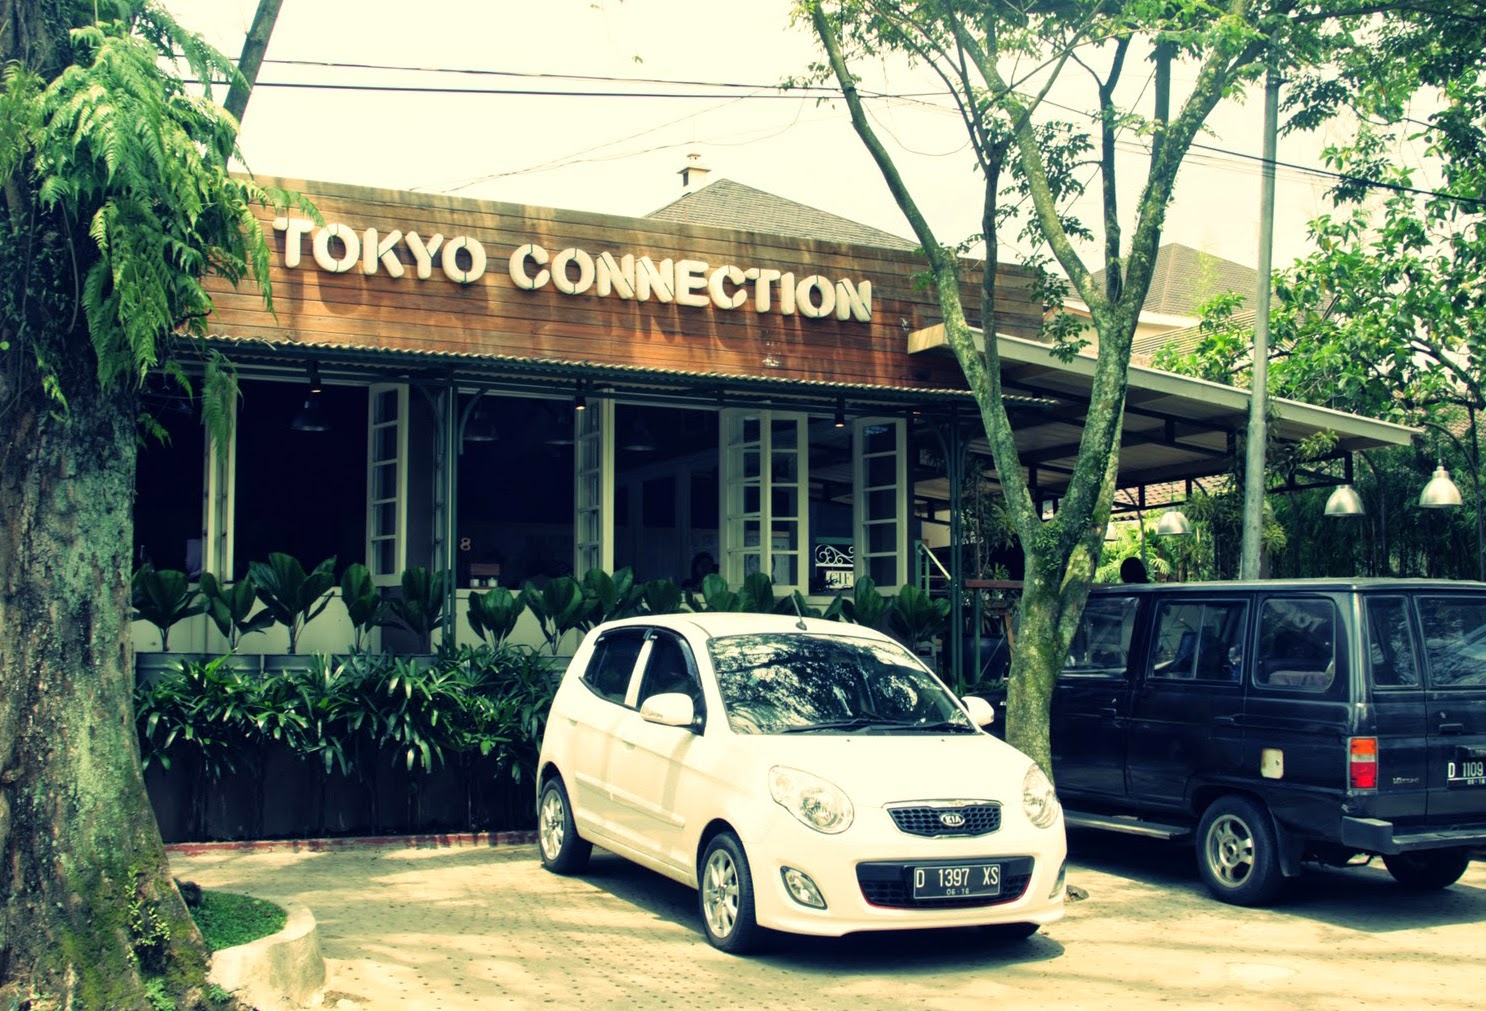 Tokyo Connection